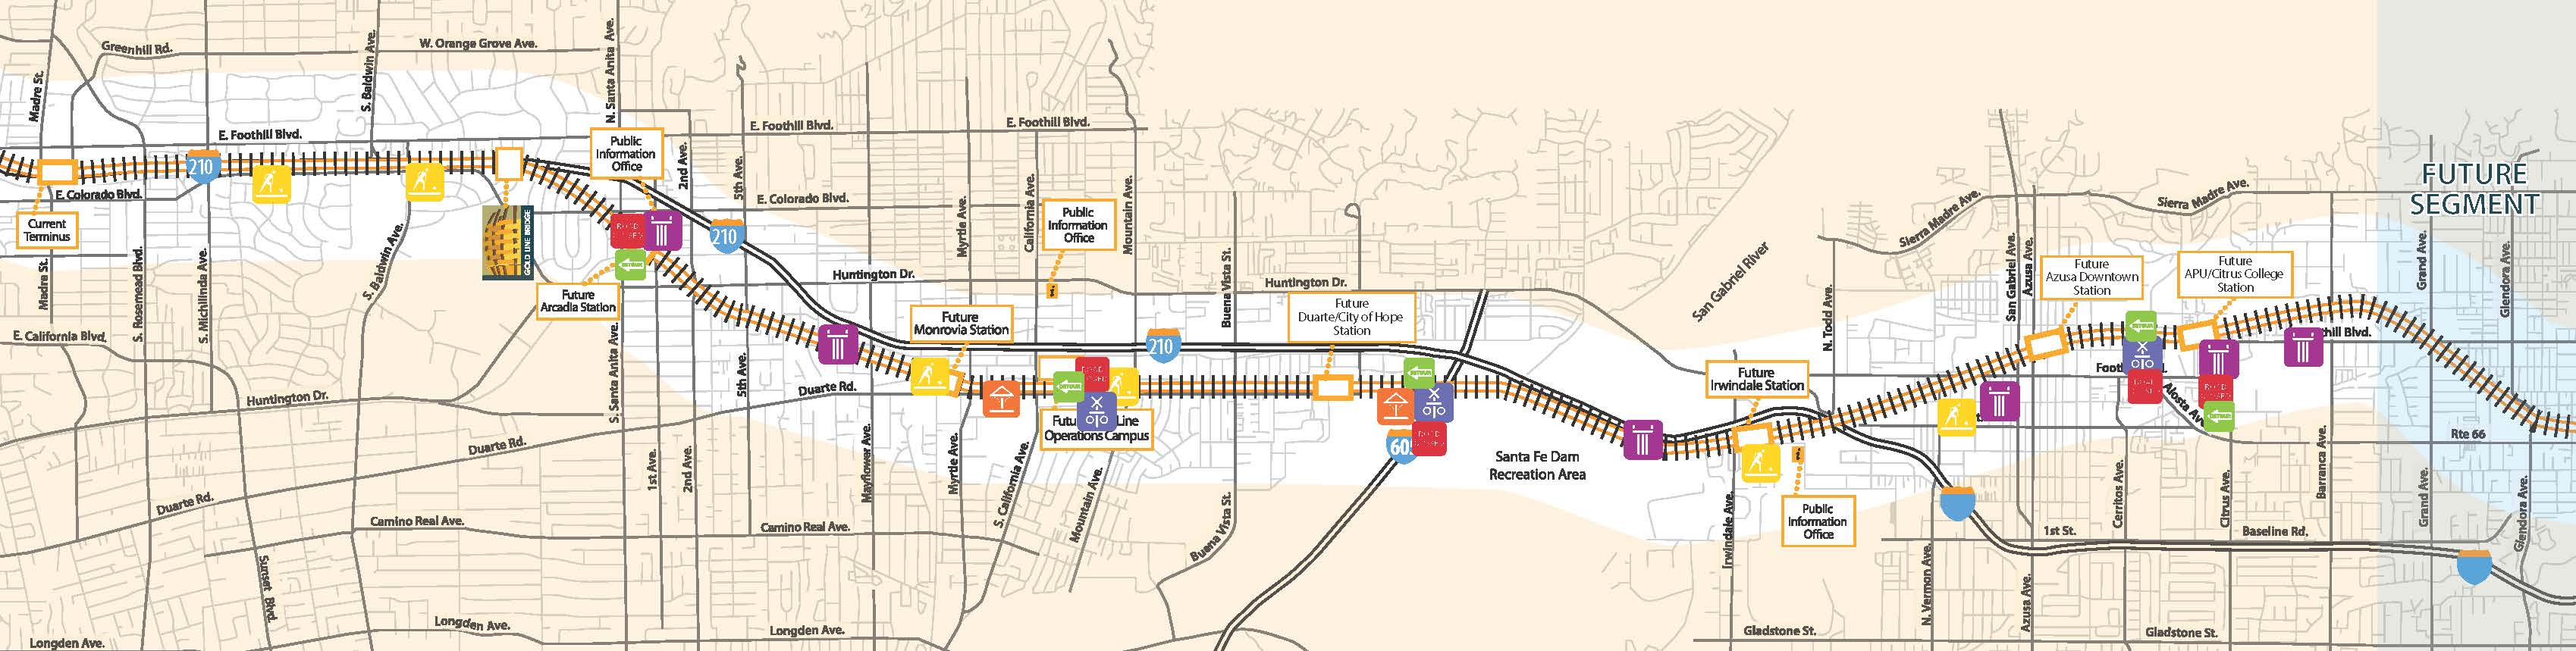 Foothill Gold Line Construction Activity Map